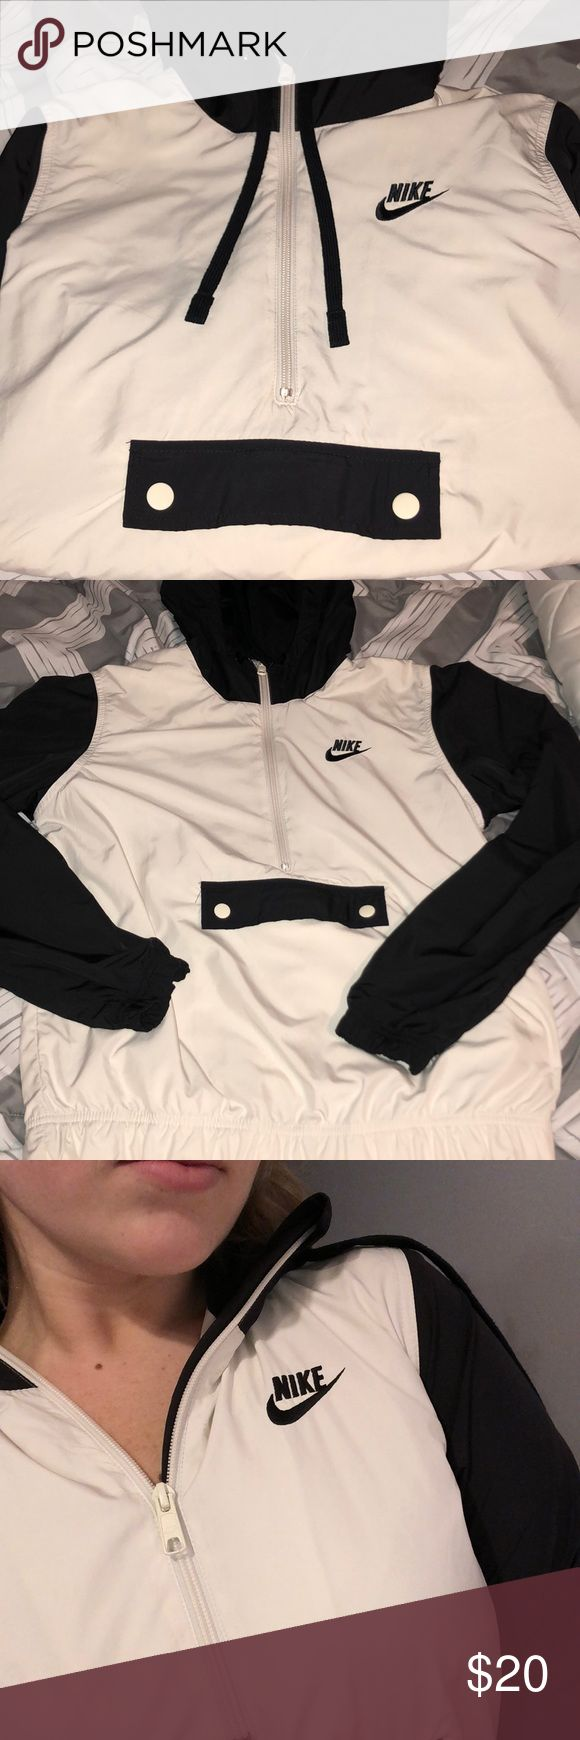 Black and white nike half zip windbreaker Worn lightly! Still in great condition. Size medium could fit a small or medium. Half zip Lined windbreaker with a pocket pouch in front. If you have any questions feel free to ask:) Nike Jackets & Coats